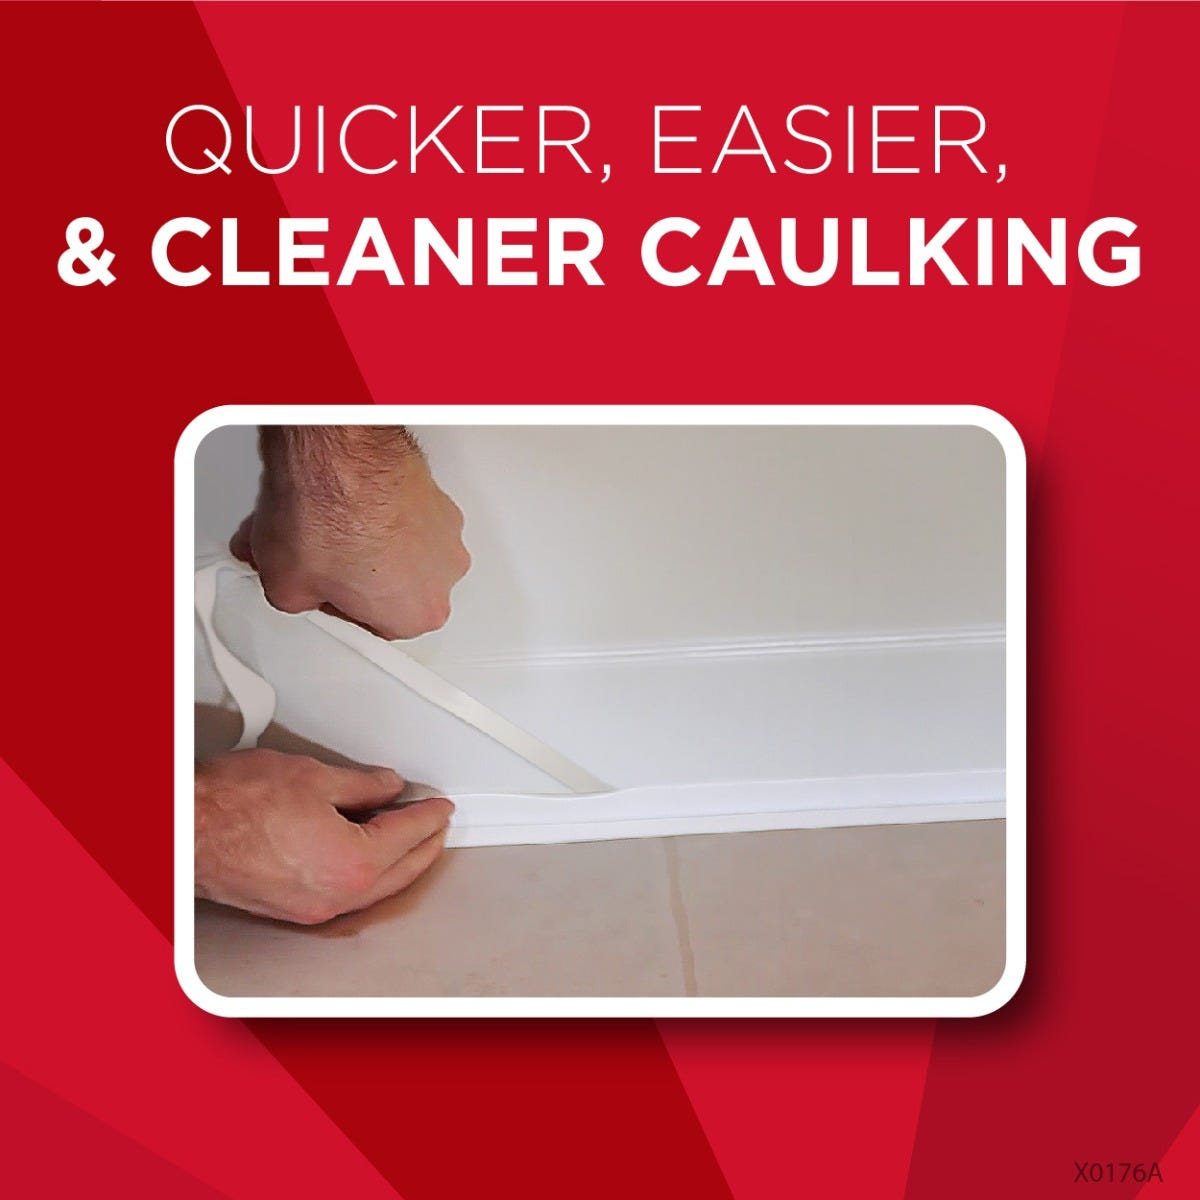 https://googone.com/media/catalog/product/p/e/peel_stick_caulk_in_use_2.jpg